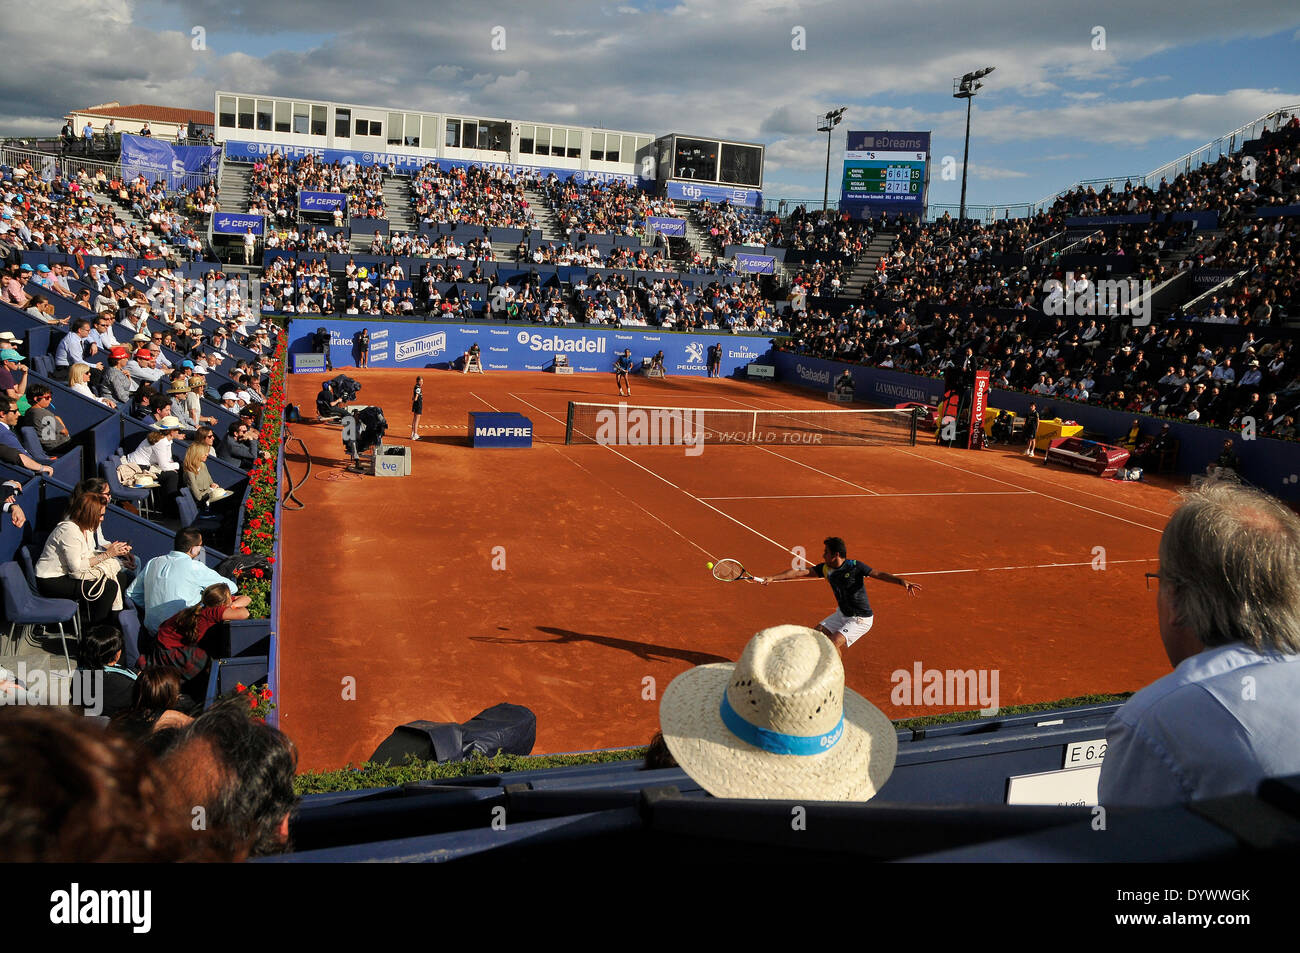 Barcelona, Spain. 25th Apr, 2014. Rafael Nadal battles against Nicolas Almagro General view during day five of the ATP World Tour 500 series on the 2014 ATP World Tour,  quarter finals Barcelona Open Banc Sabadell at the Real Club de Tenis Barcelona Credit:  fototext/Alamy Live News - Stock Image